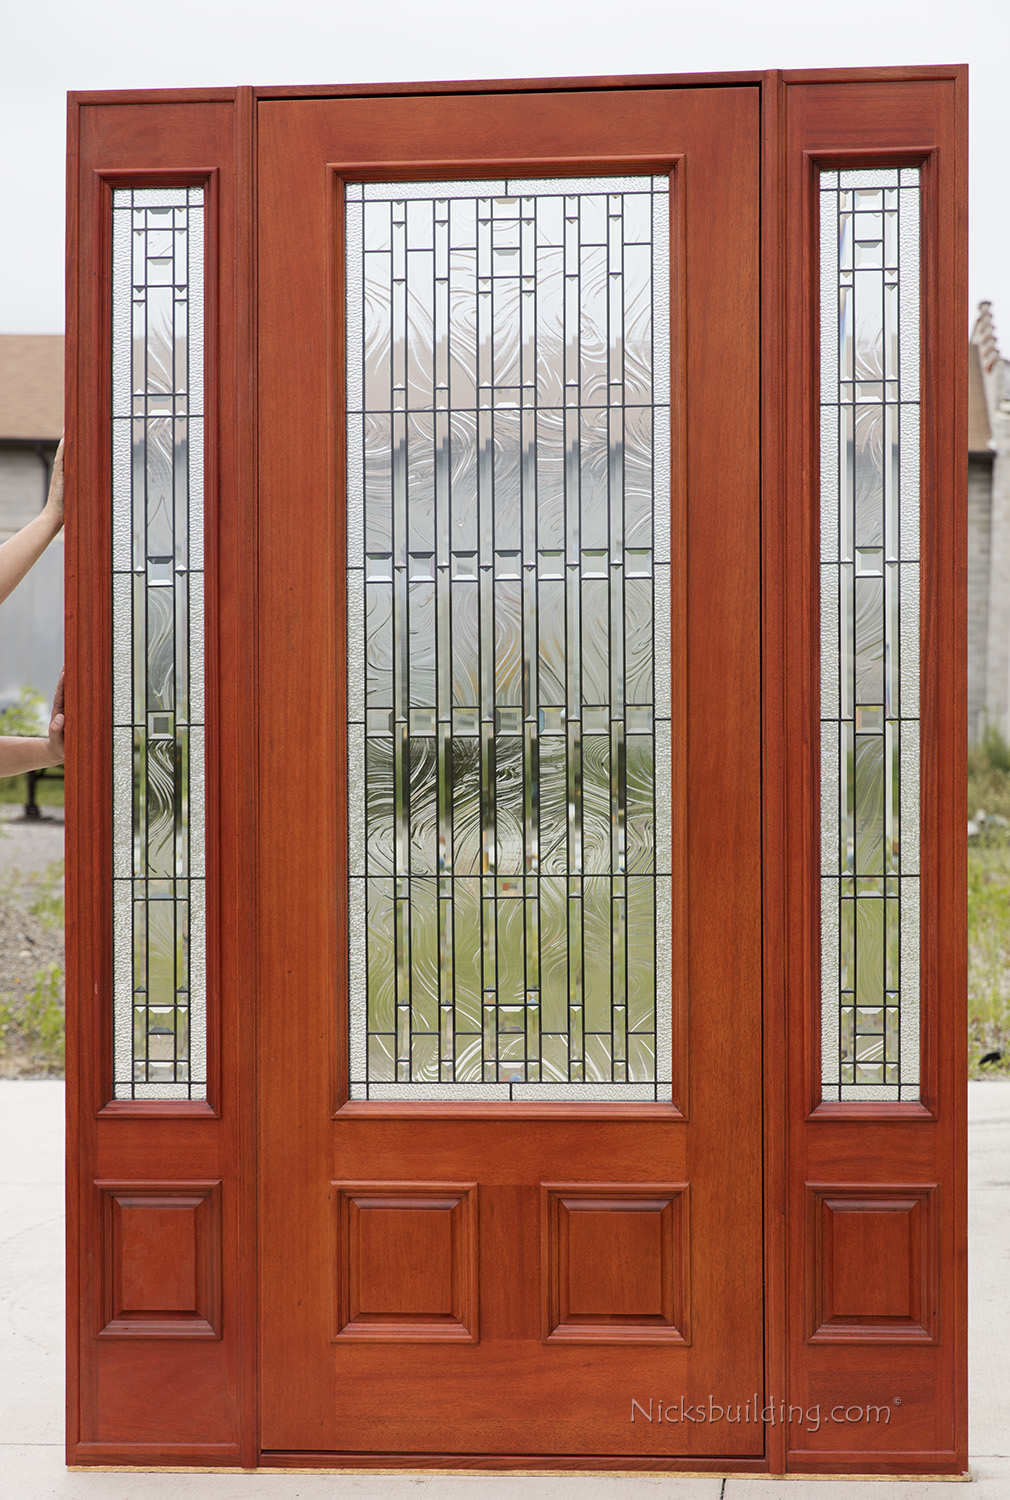 Clearance exterior doors with sidelights 35 pfc 252 80 entry door with sidelights pre finished in burnt planetlyrics Image collections